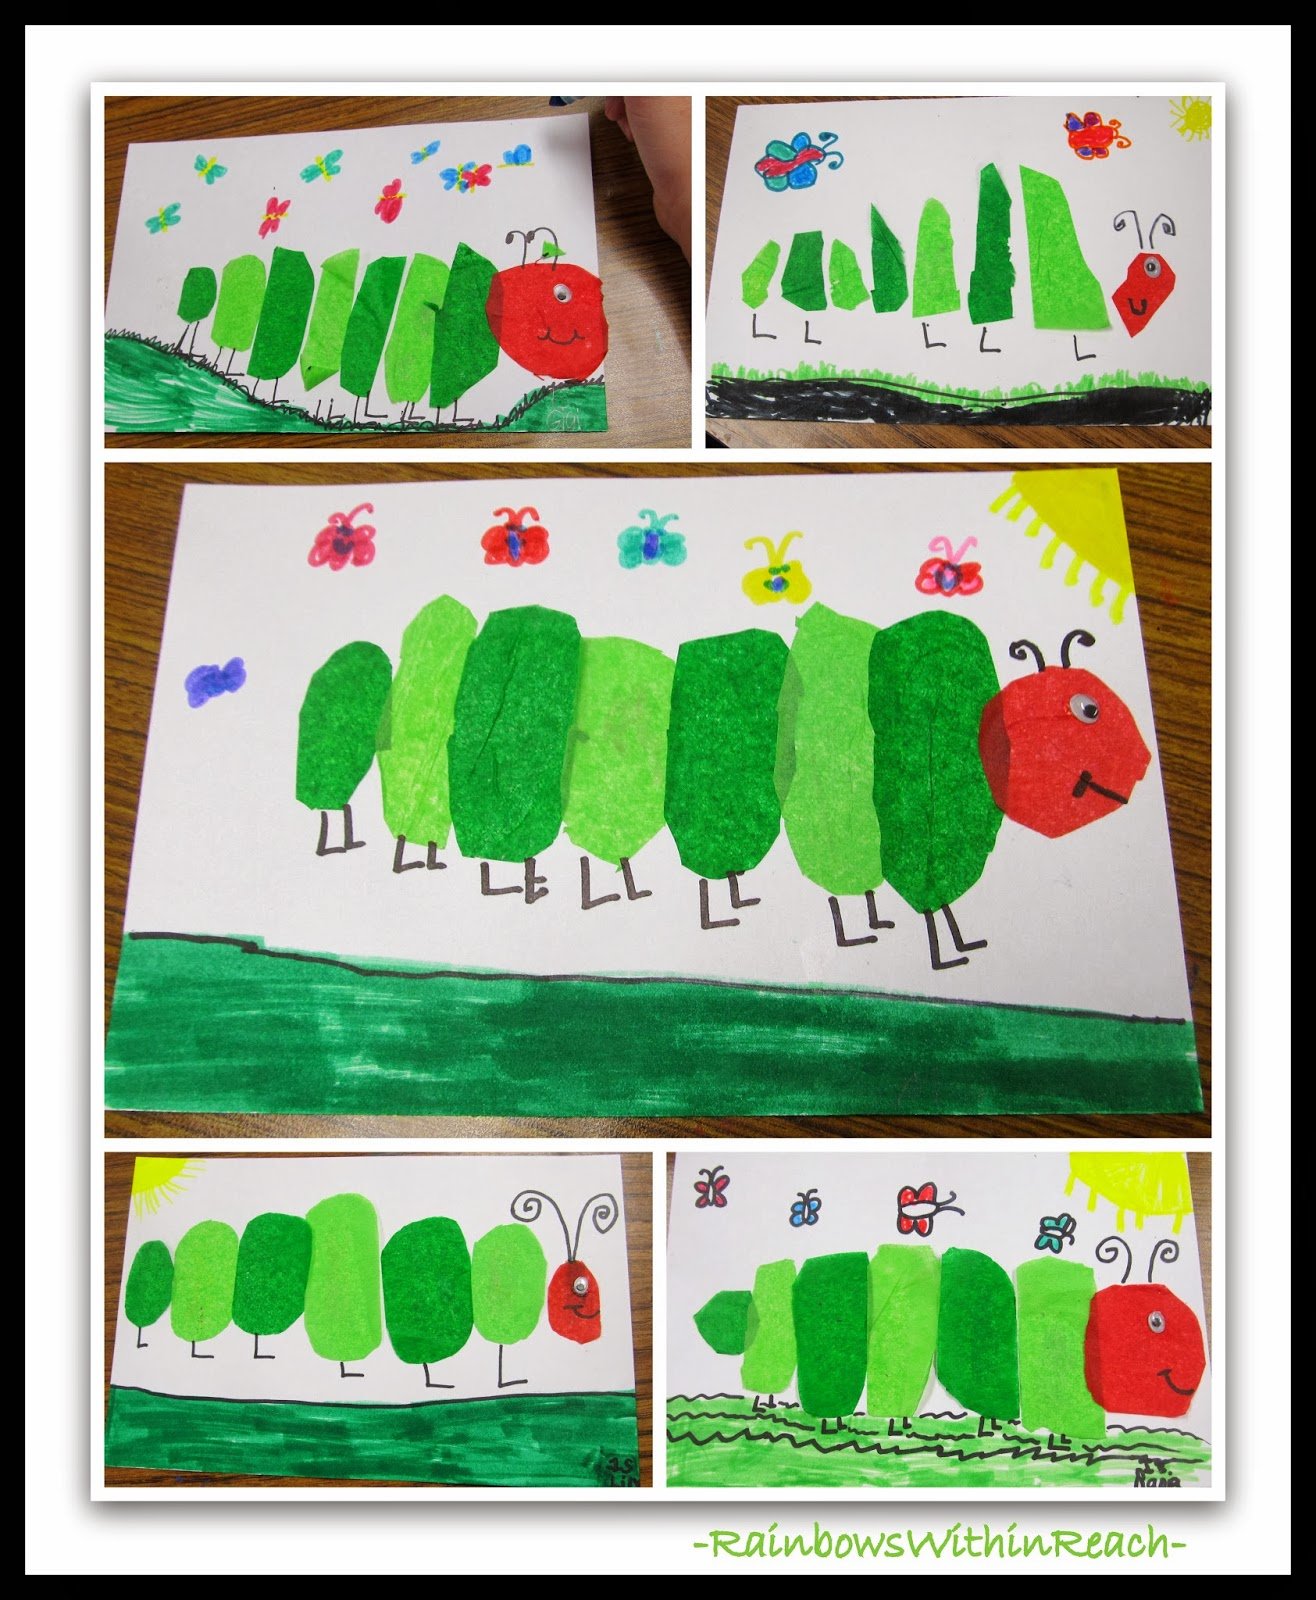 Rainbowswithinreach Tissue Paper Hungry Caterpillars Reflect Eric Carle